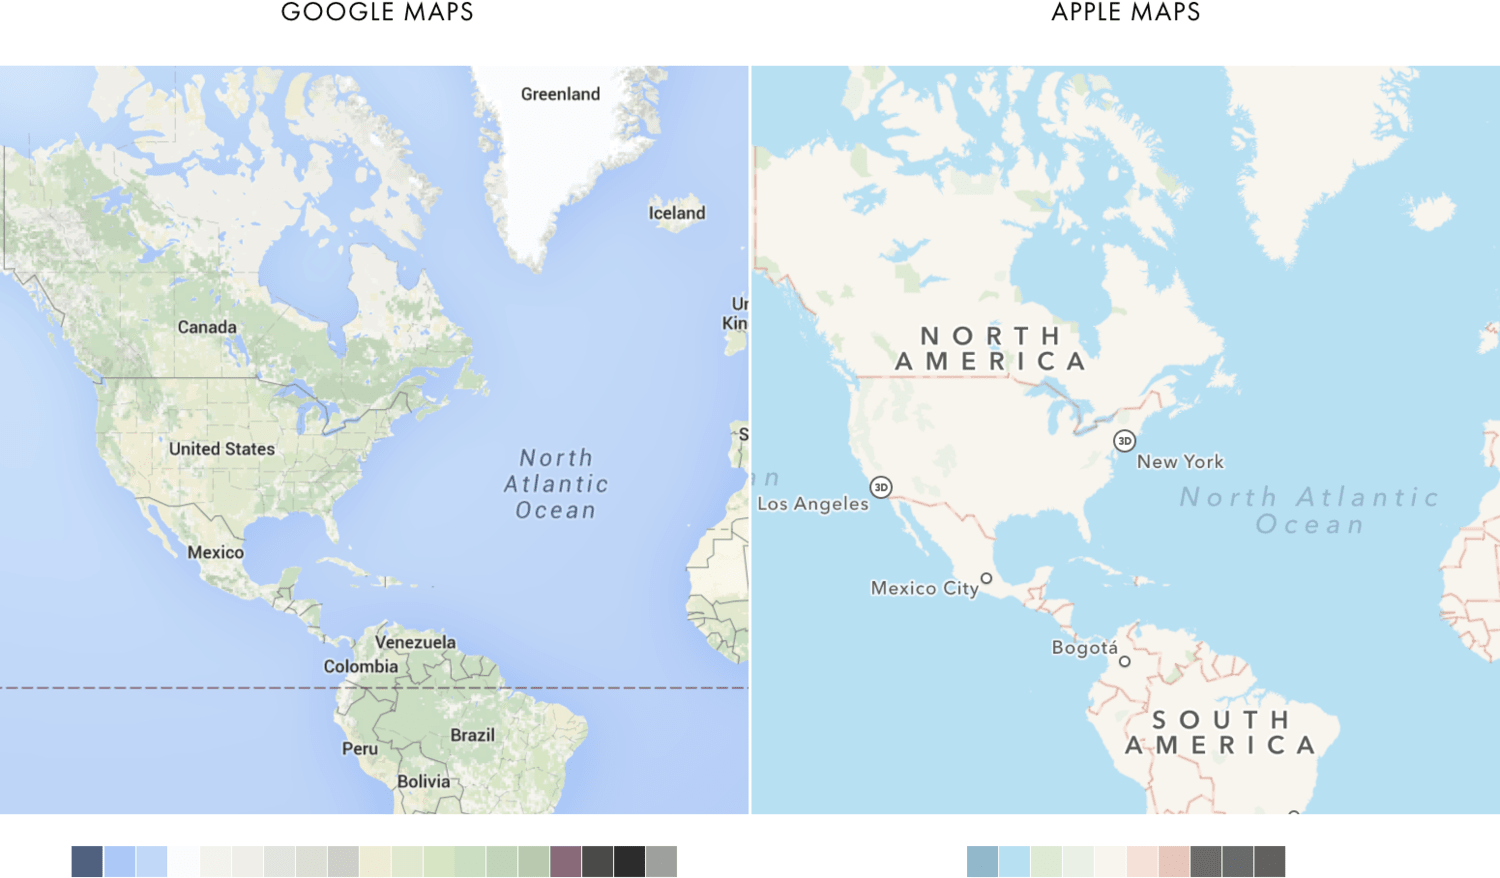 Google Maps vs Apple Maps: best choice for your mobile